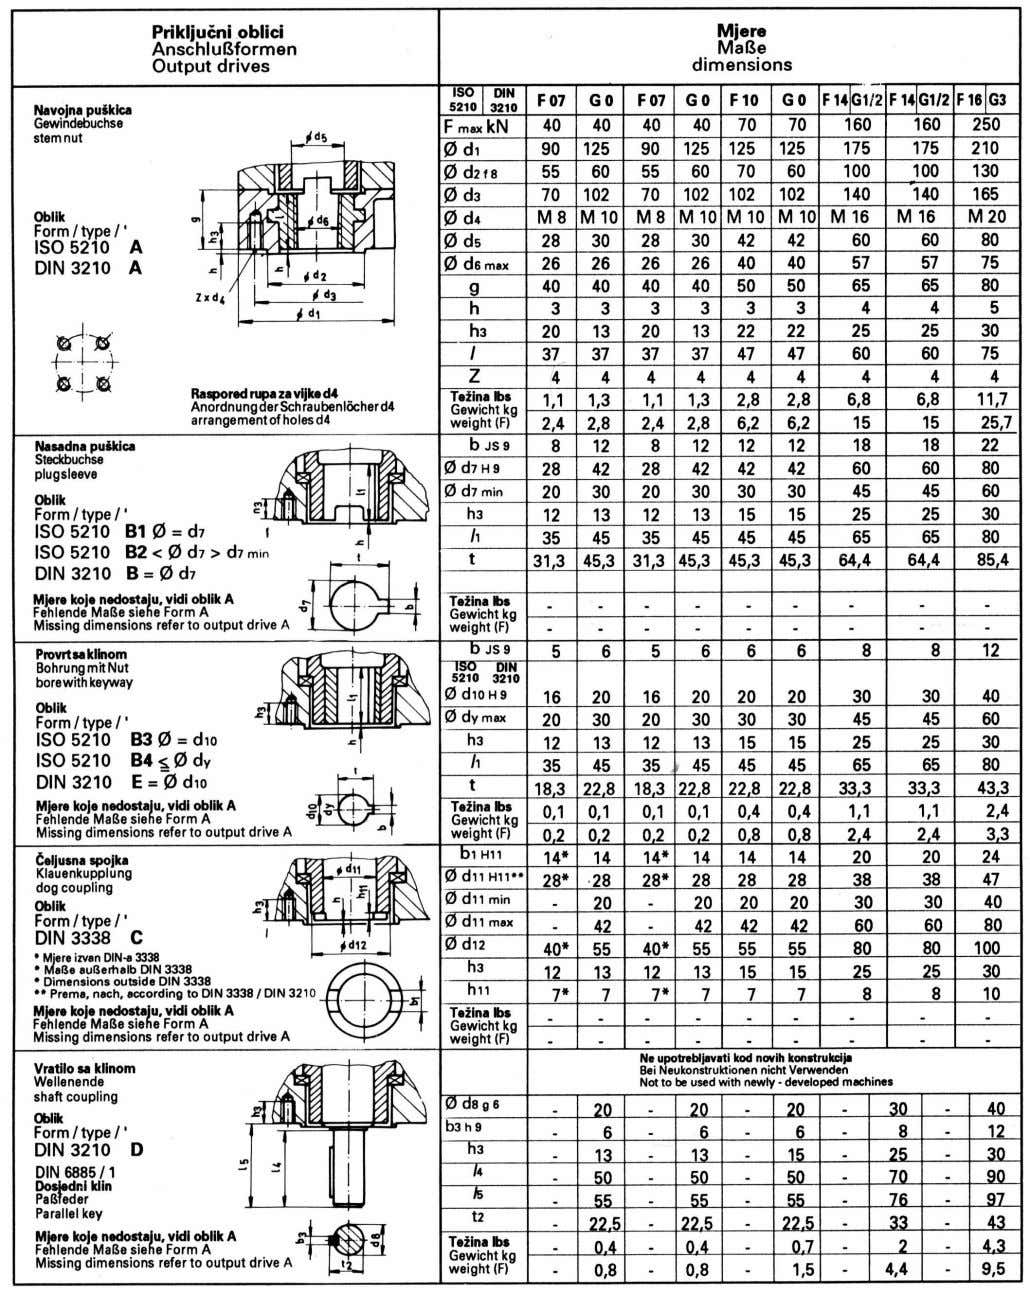 ISO 5210, DIN 3338, DIN 3210 ACTUATOR OUTPUT DRIVE TYPES ACCORDING TO ISO 5210, DIN 3338,